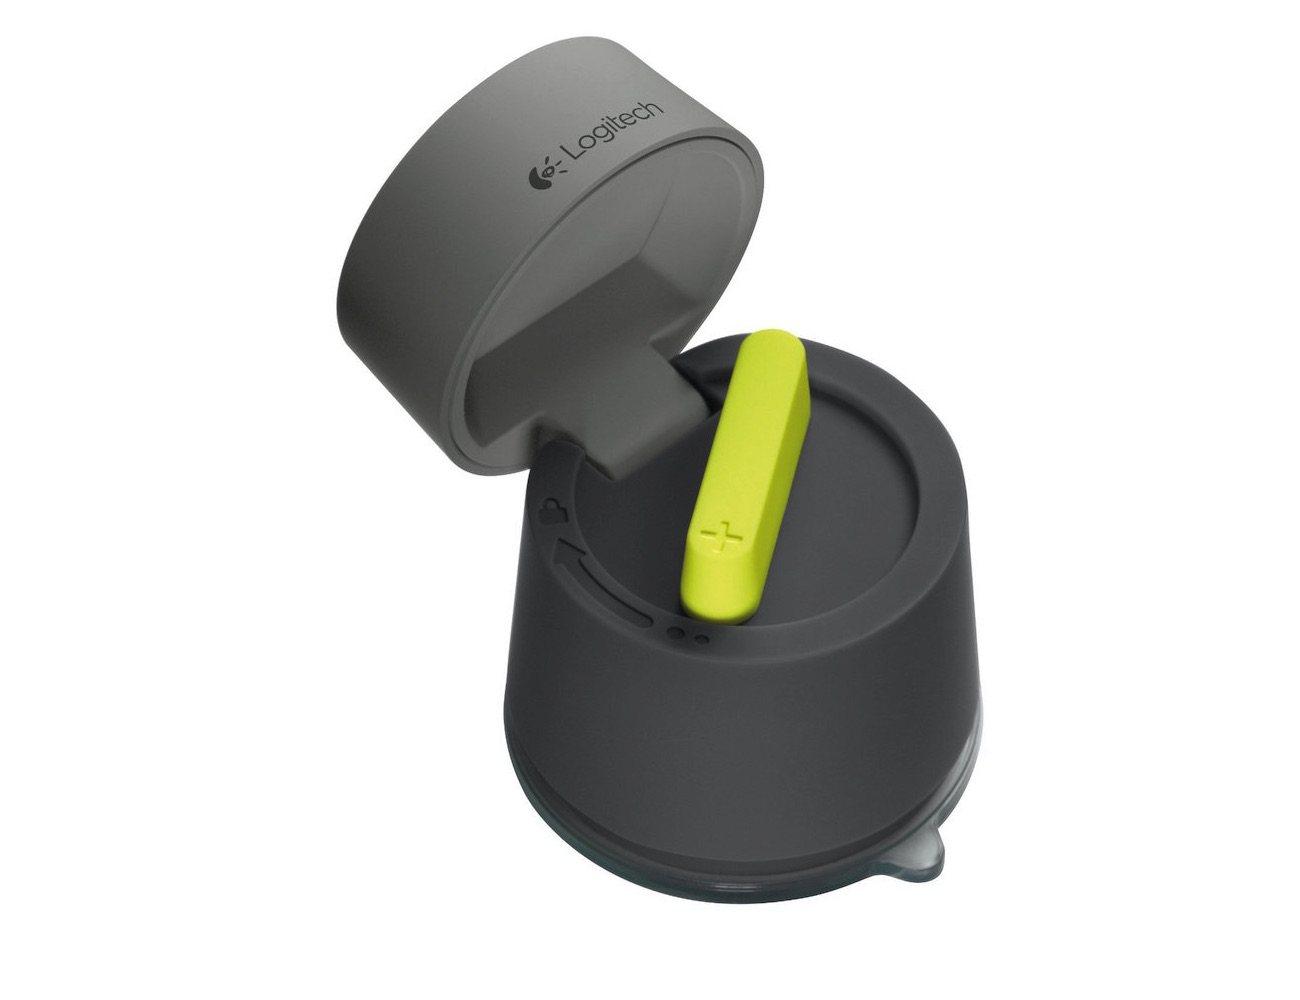 Logitech [+] drive – One-Touch Smartphone Car Mount